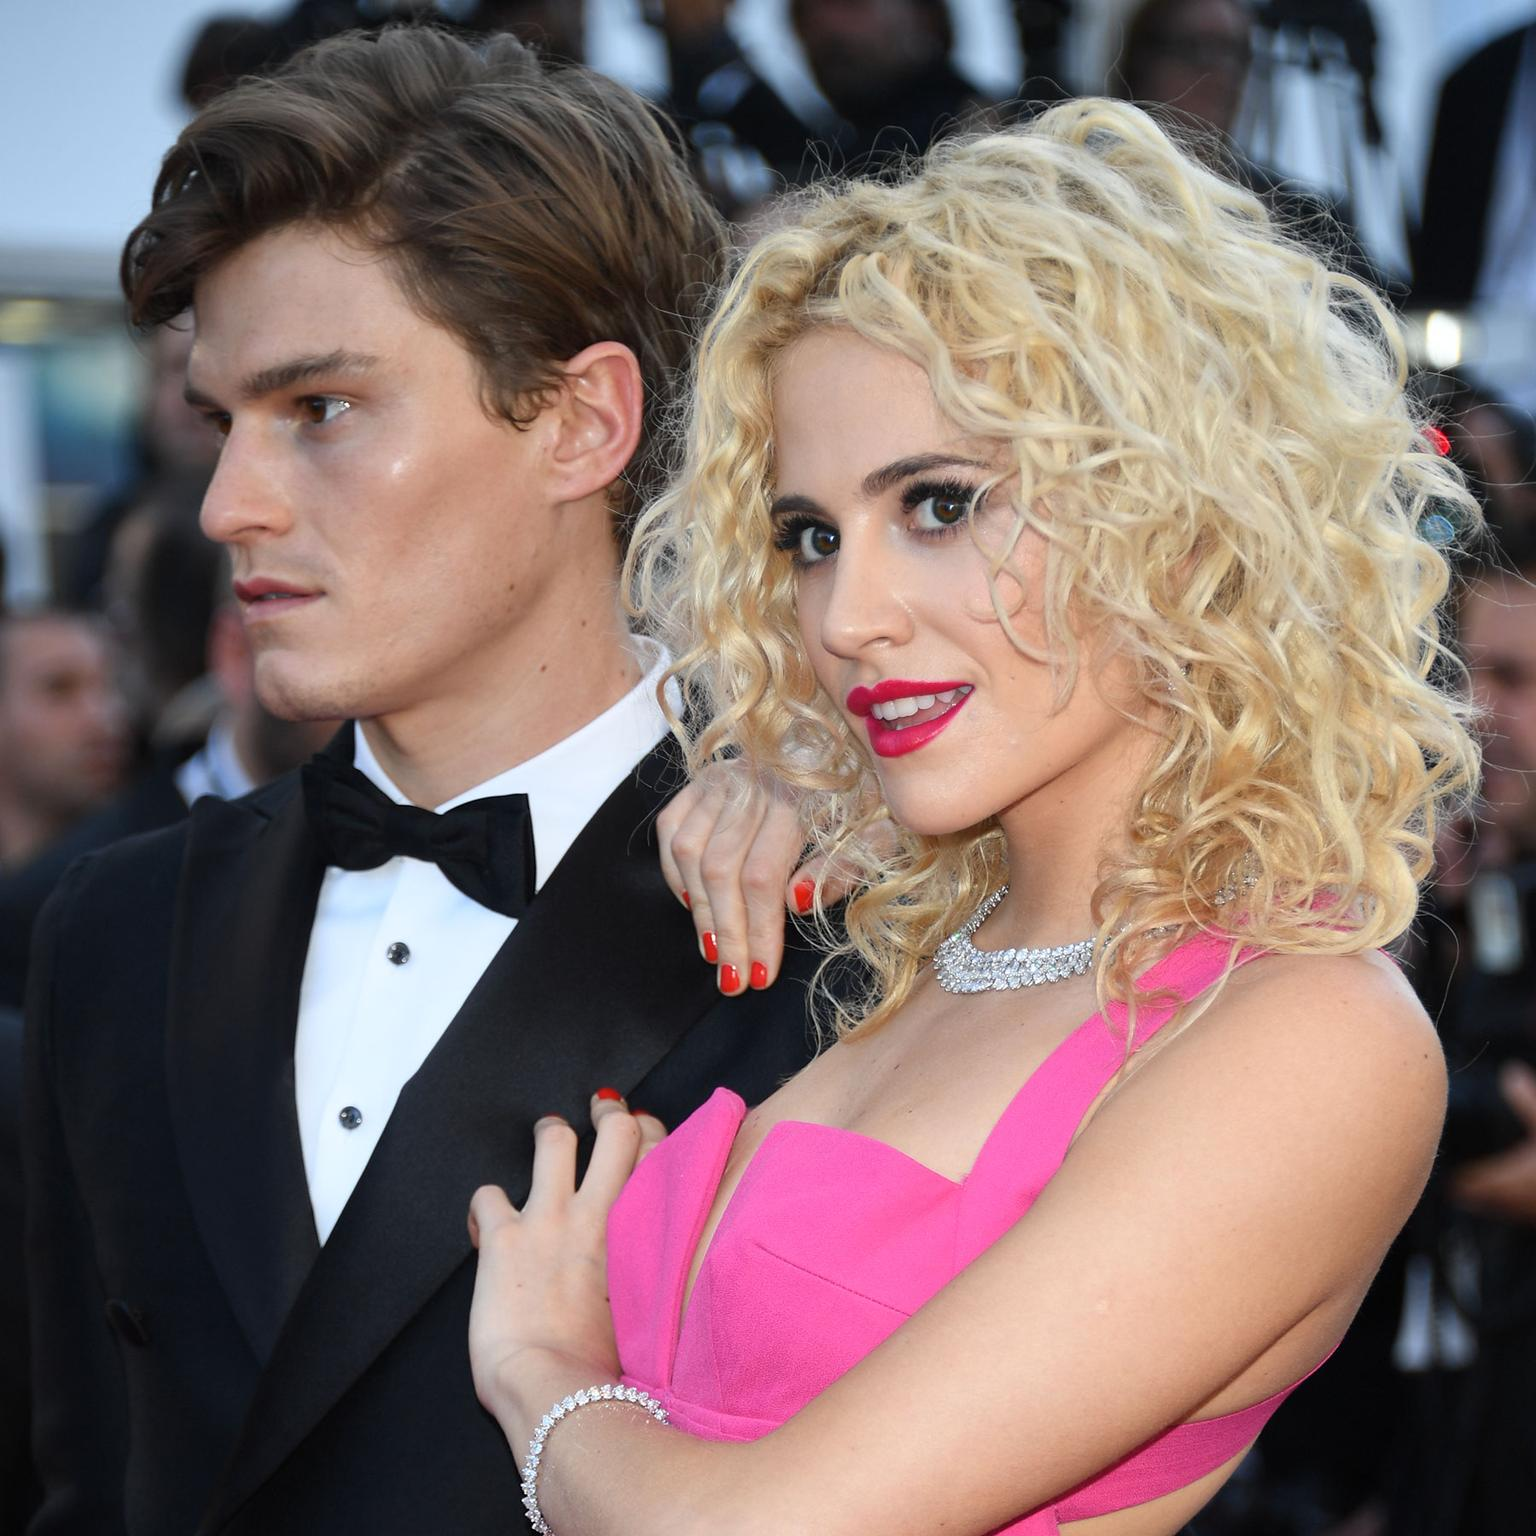 Cannes 2016 Day 5: Oliver Cheshire and Pixie Lott in Chopard